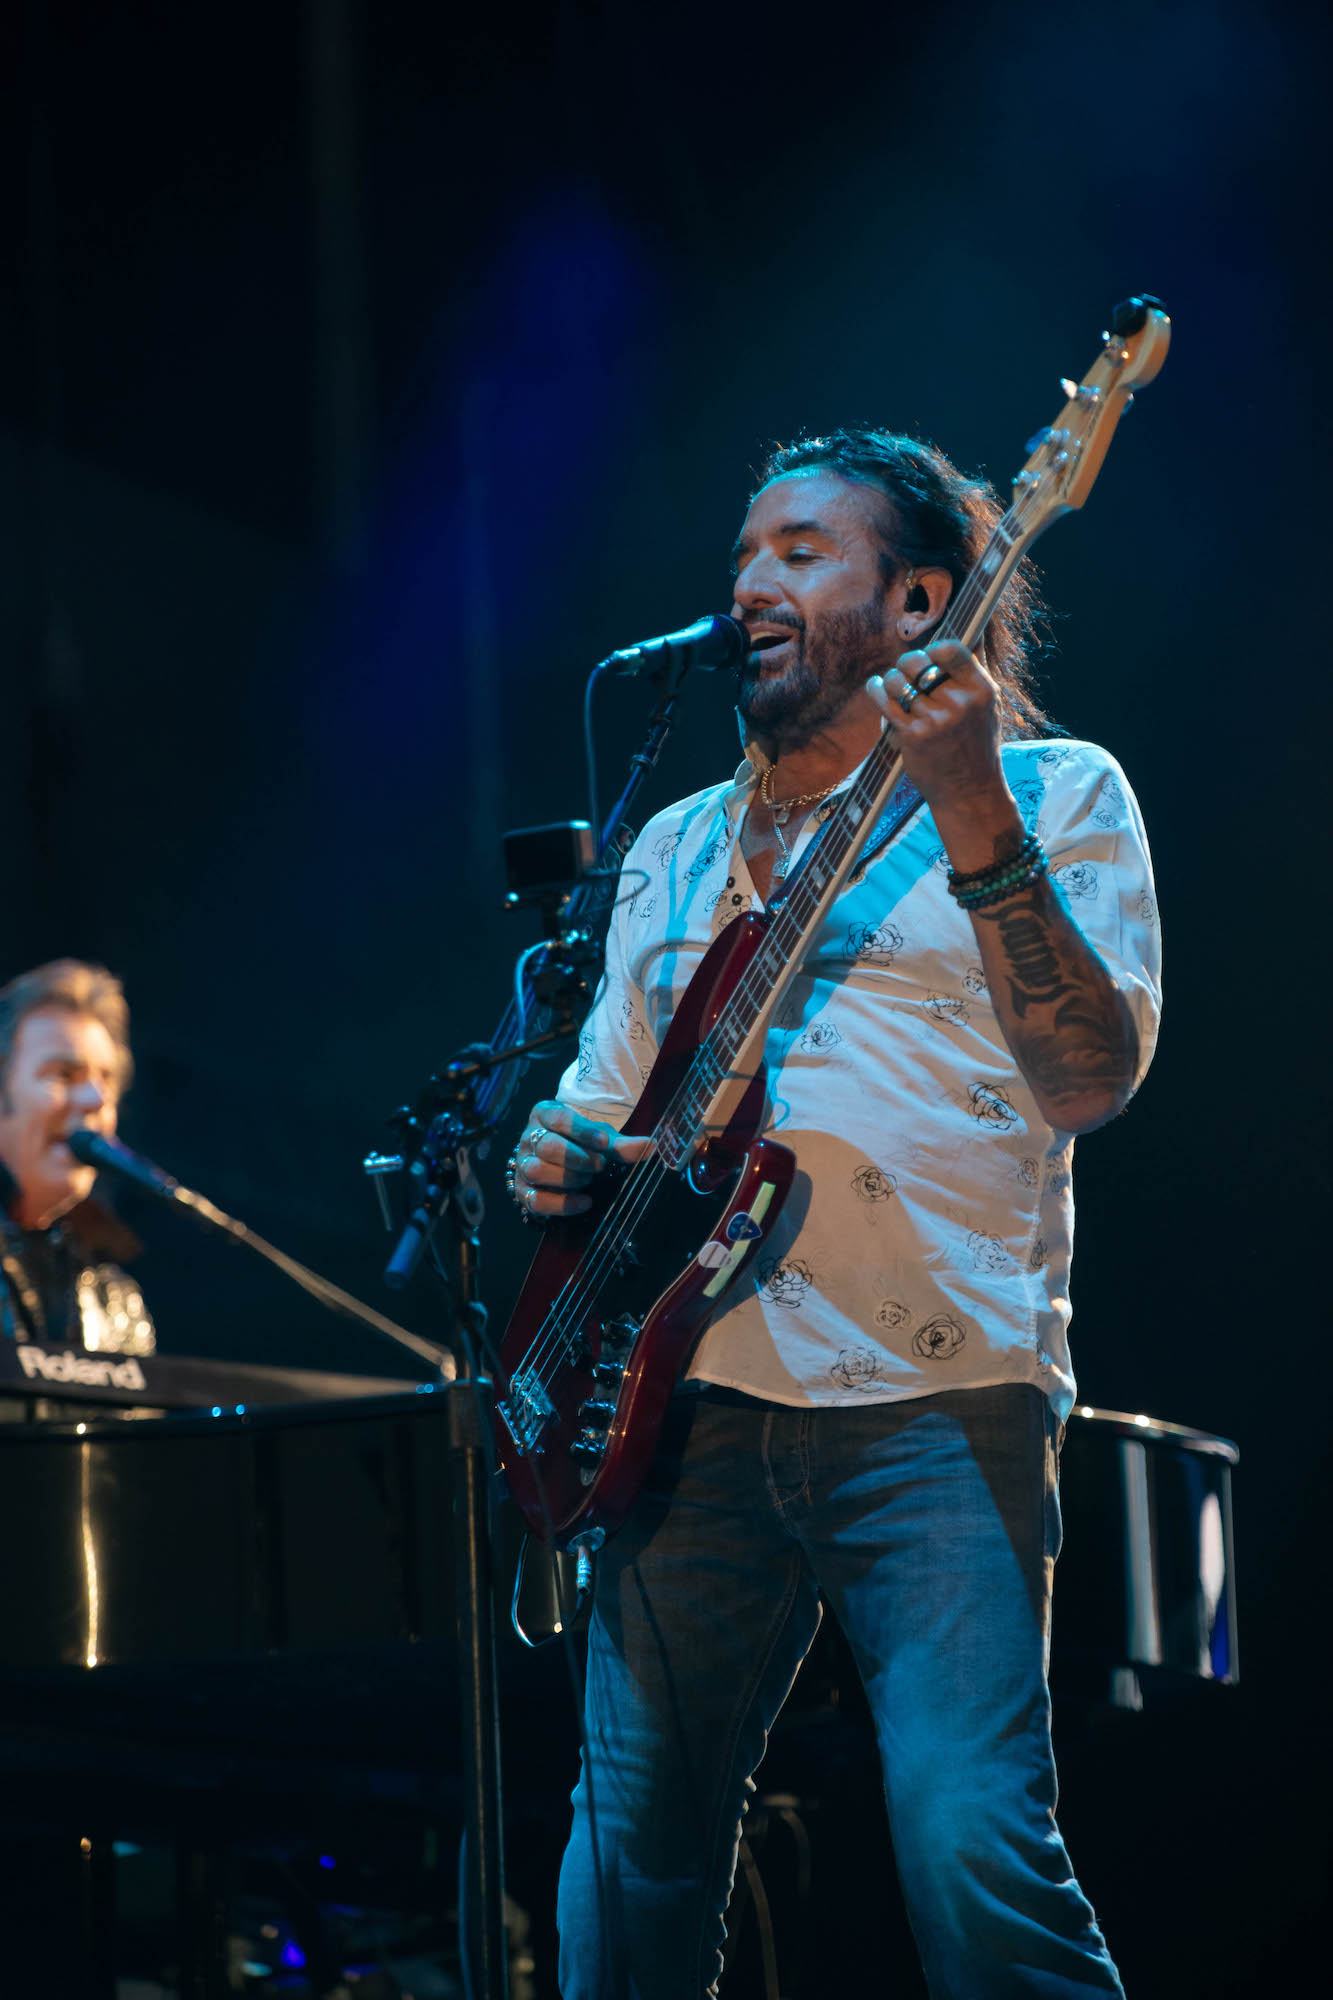 Journey Live at Lollapalooza [GALLERY] 10